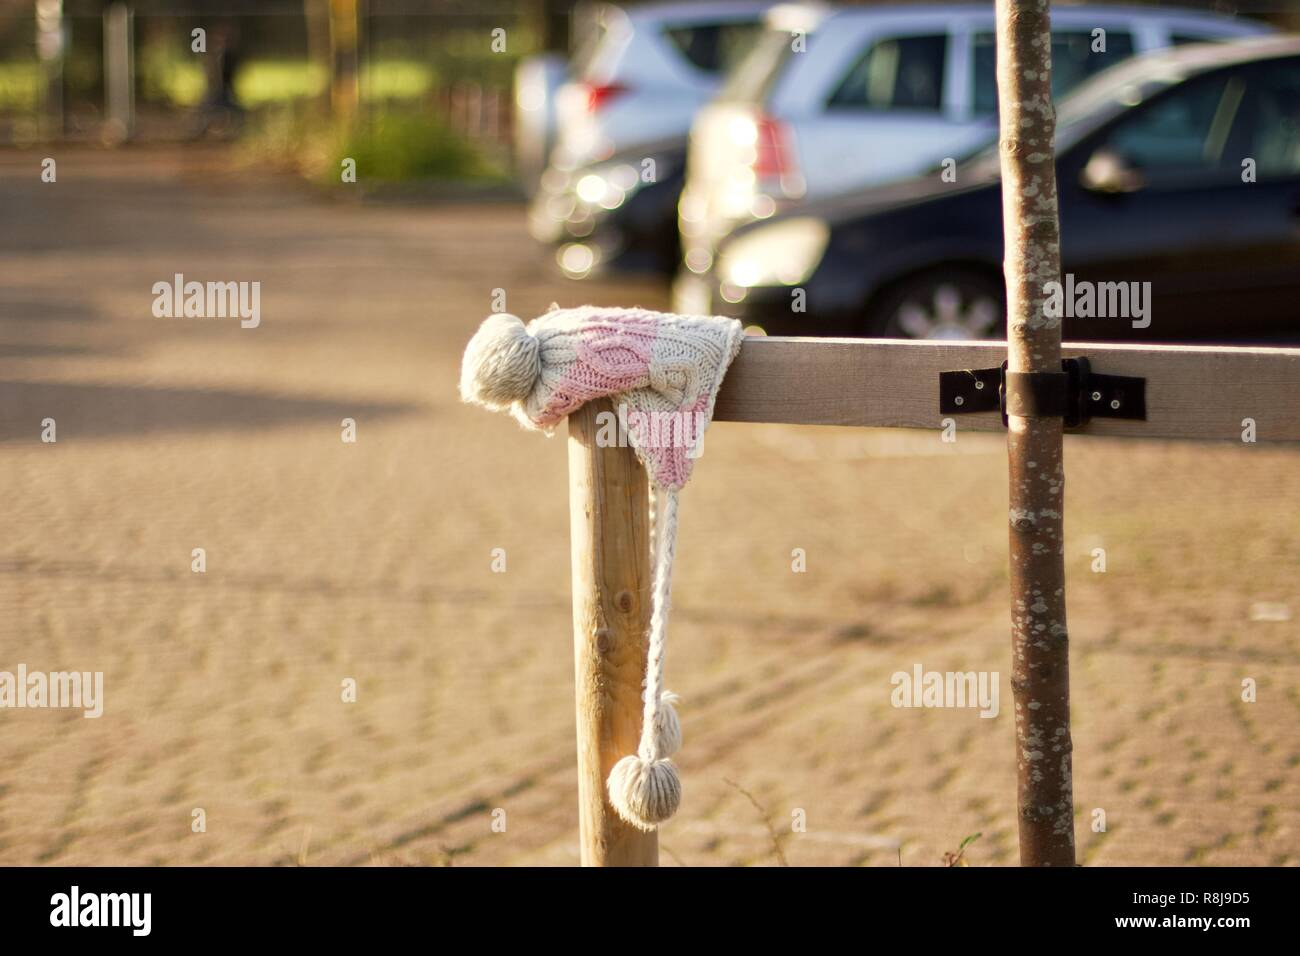 A pink and white woollen children's hat abandoned or lost in a car park - Stock Image